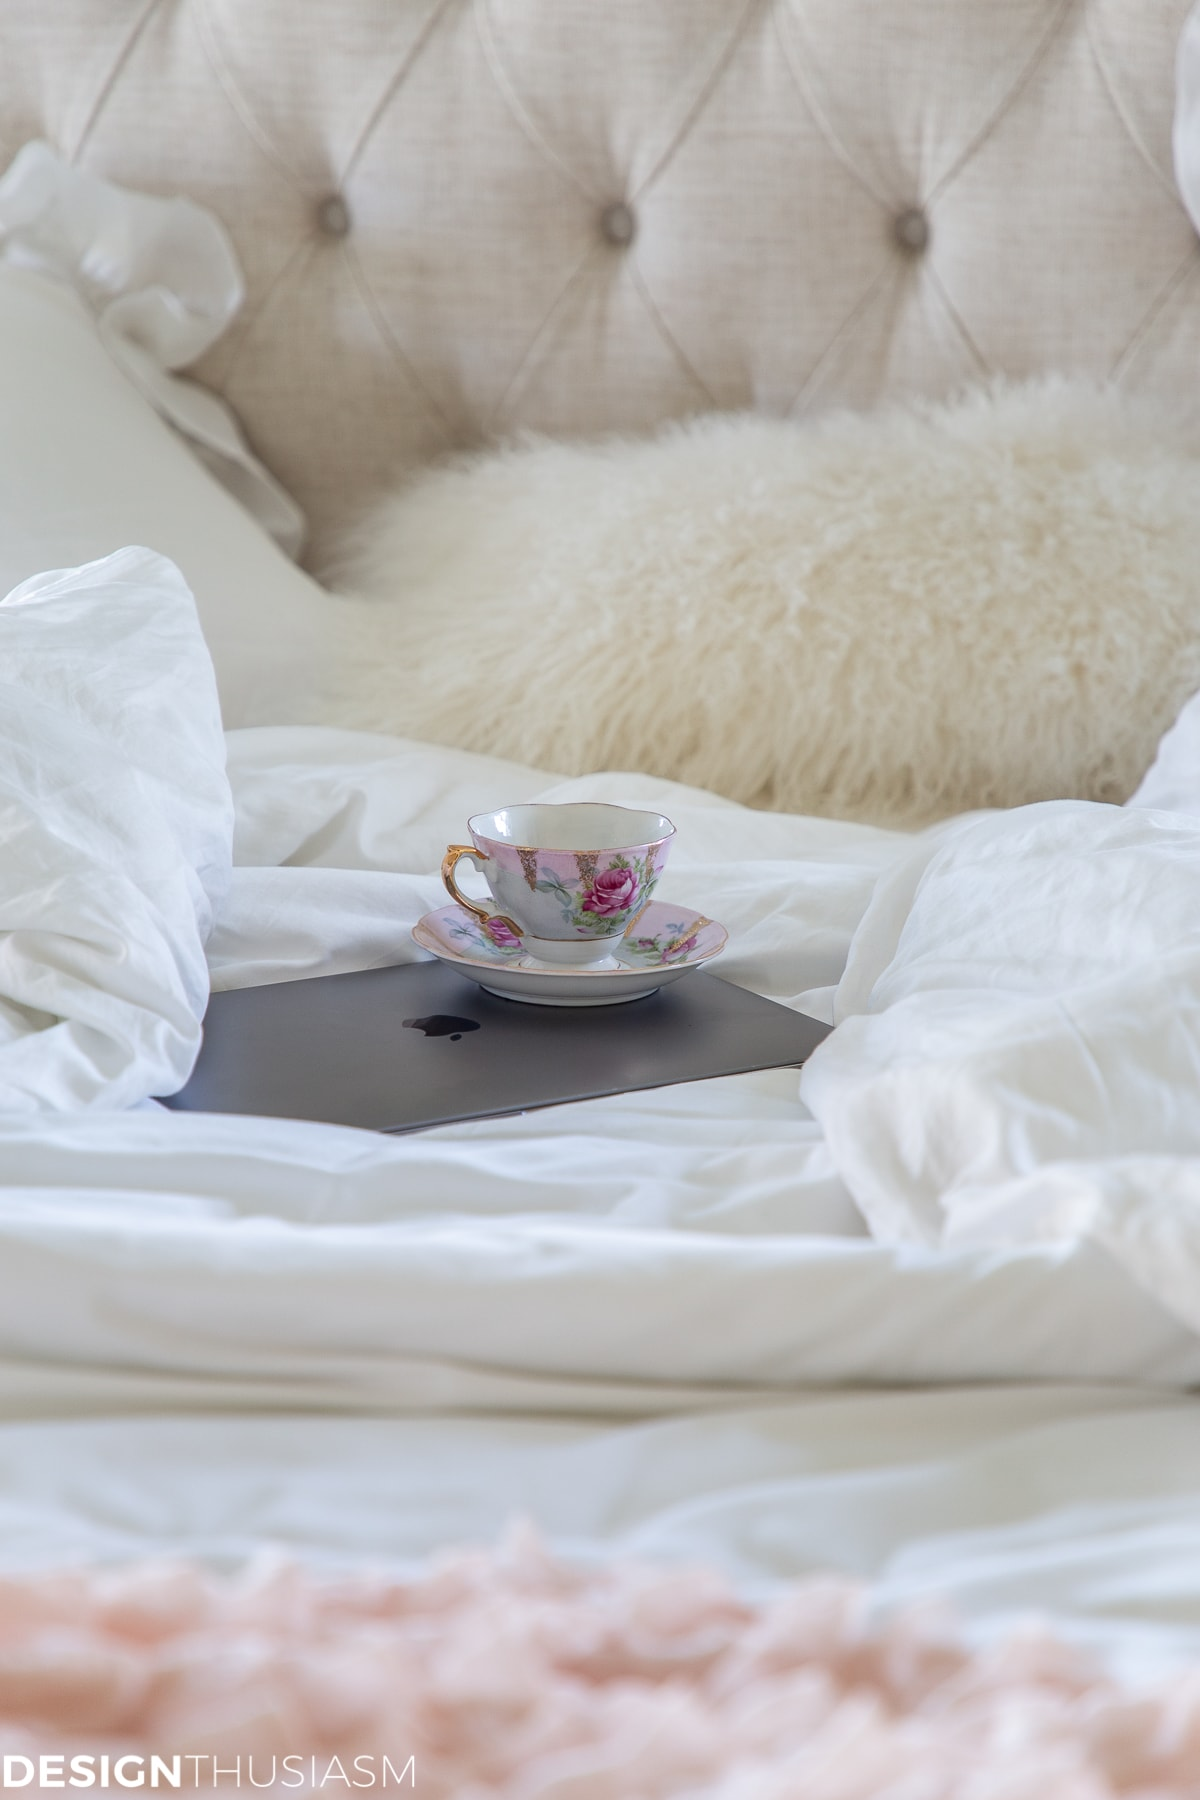 fur pillow teacup and other winter decor ideas